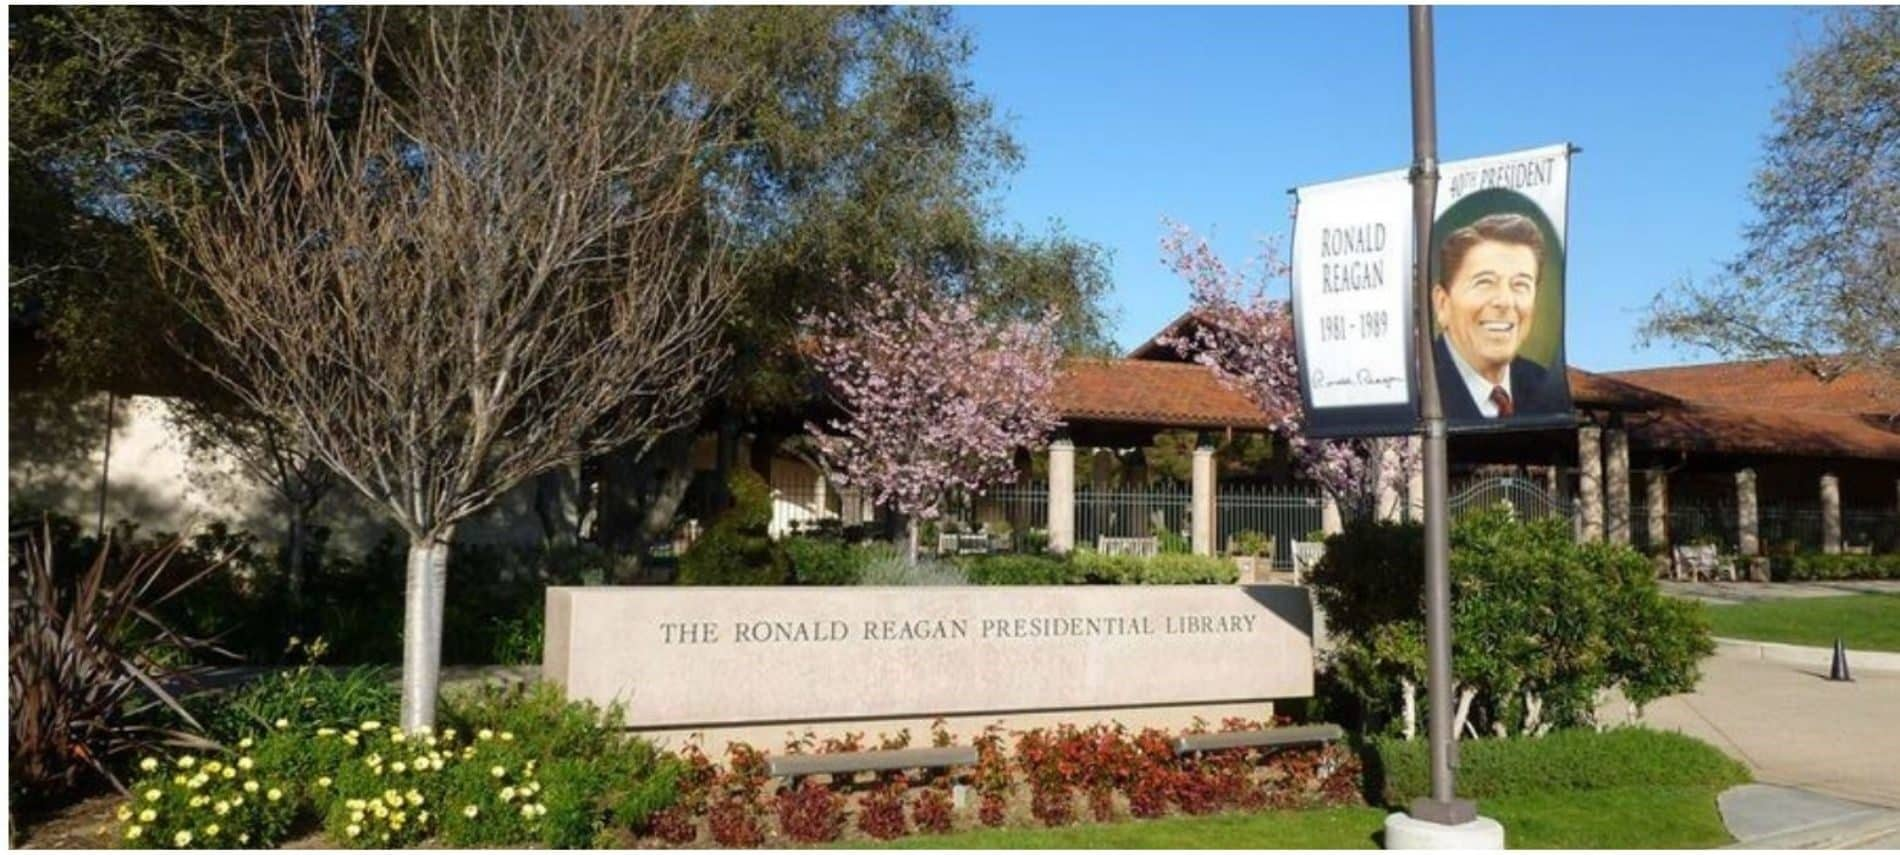 front of Ronald Reagan Presidential Library with fountain